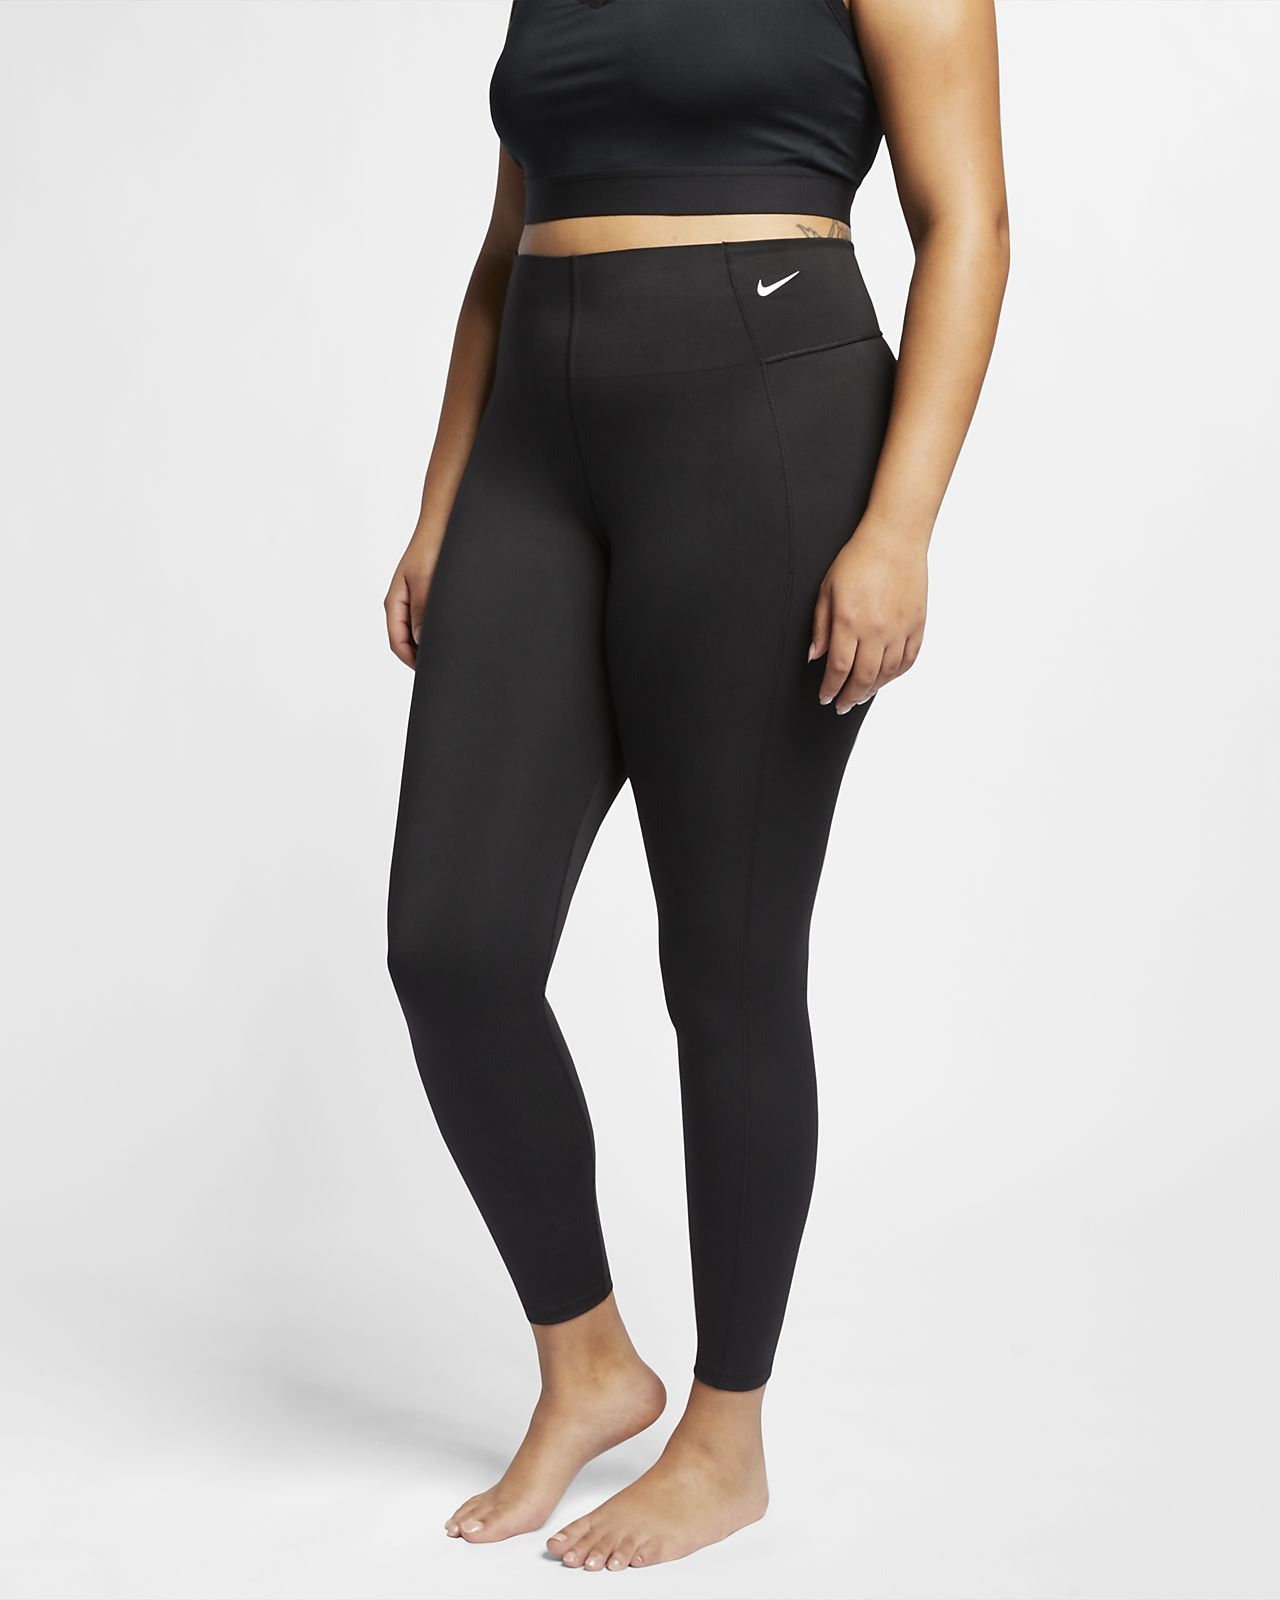 a091c7530a Nike Sculpt Women s Training Tights (Plus Size). Nike.com GB